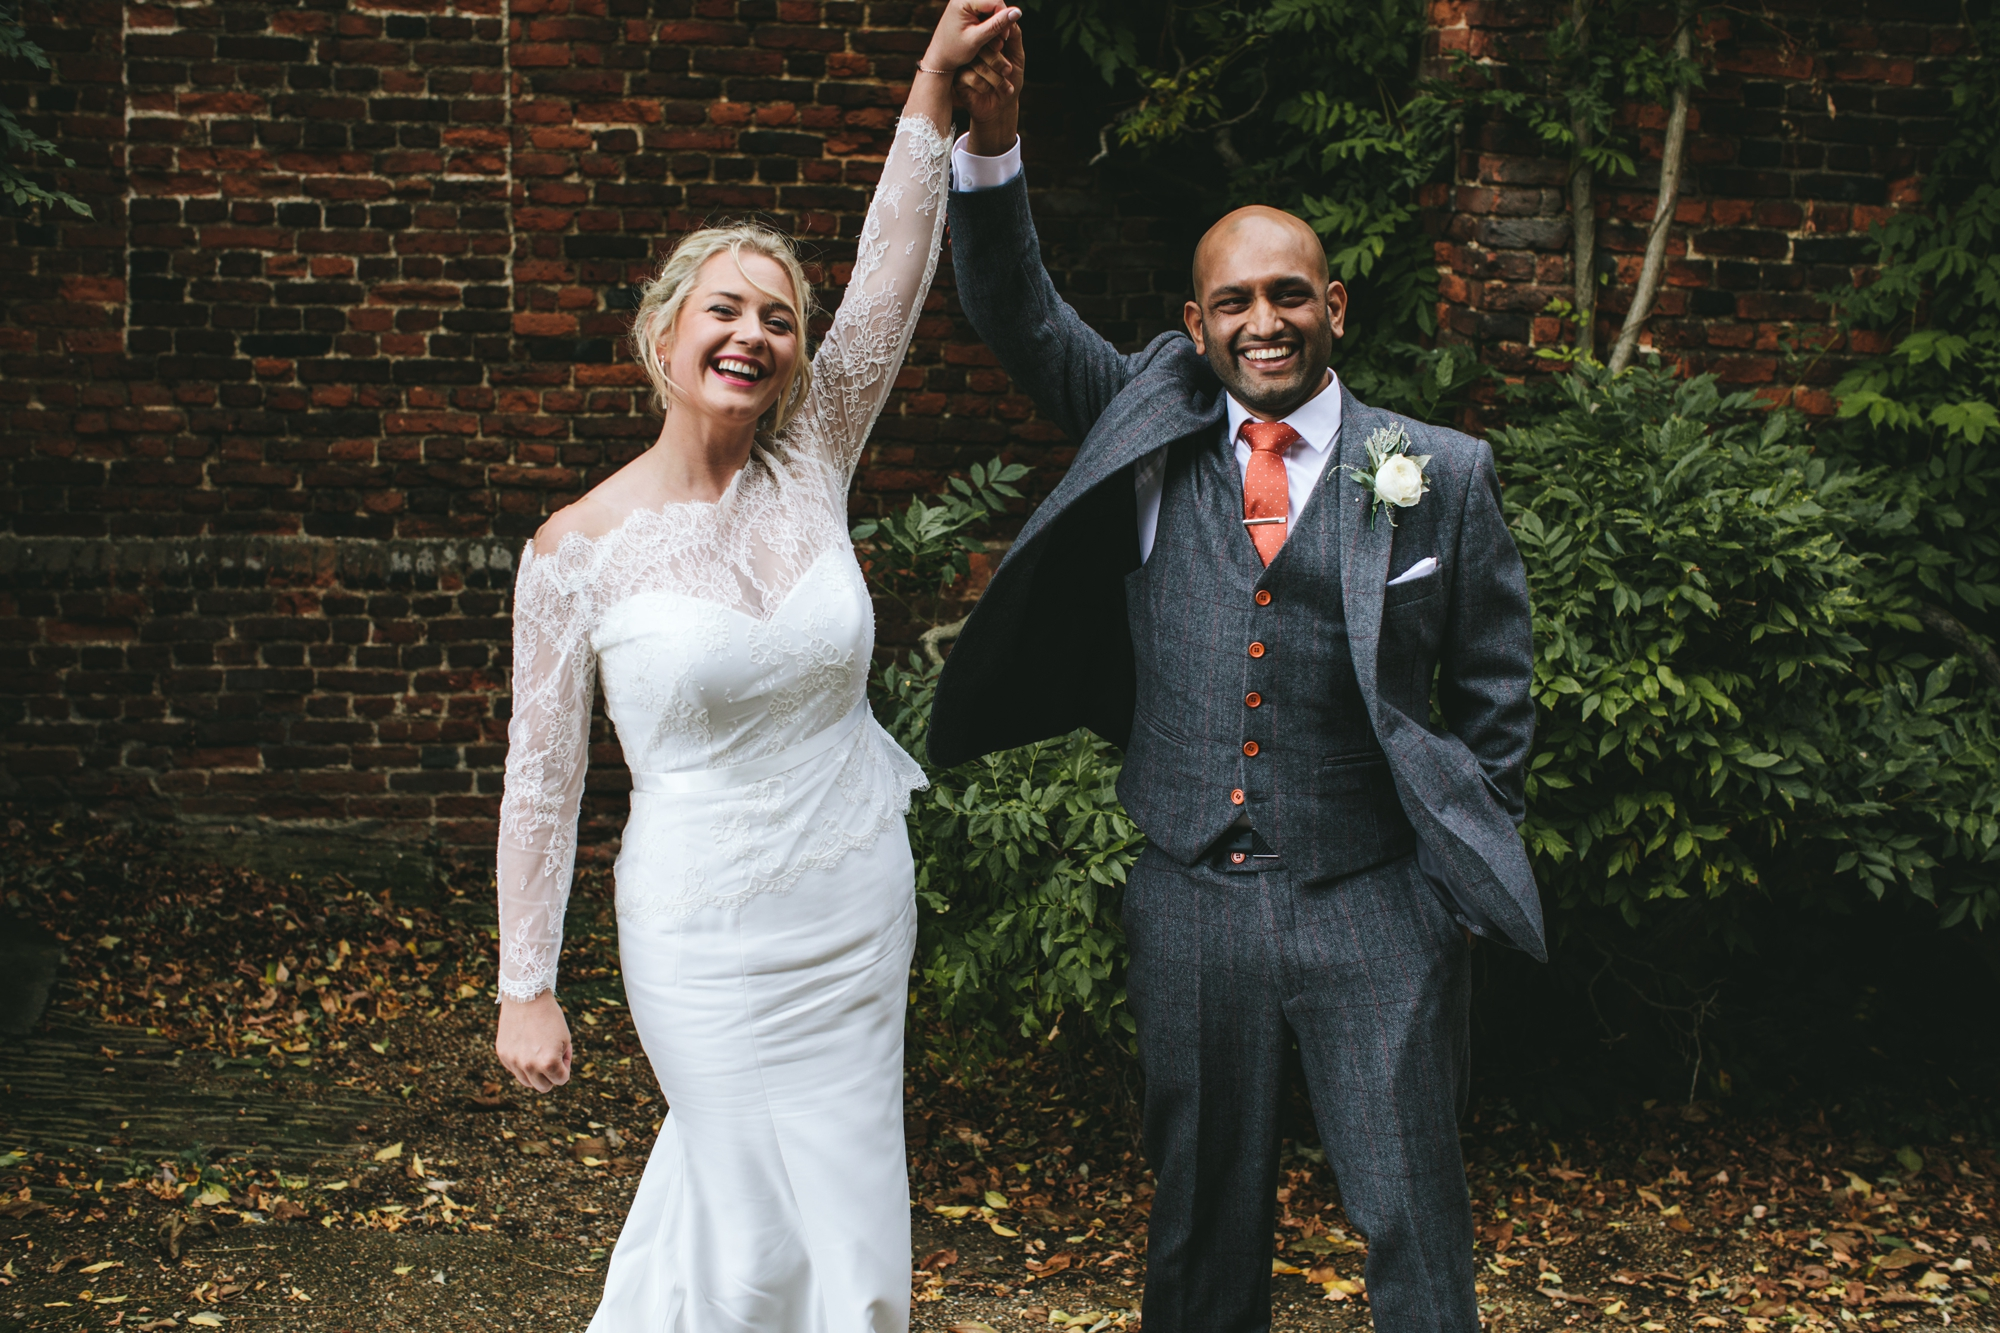 A Suzanne Neville Bride in a Classic, Long-Sleeved Lace Dress for a Celestial Inspired Wedding at Hatfield House